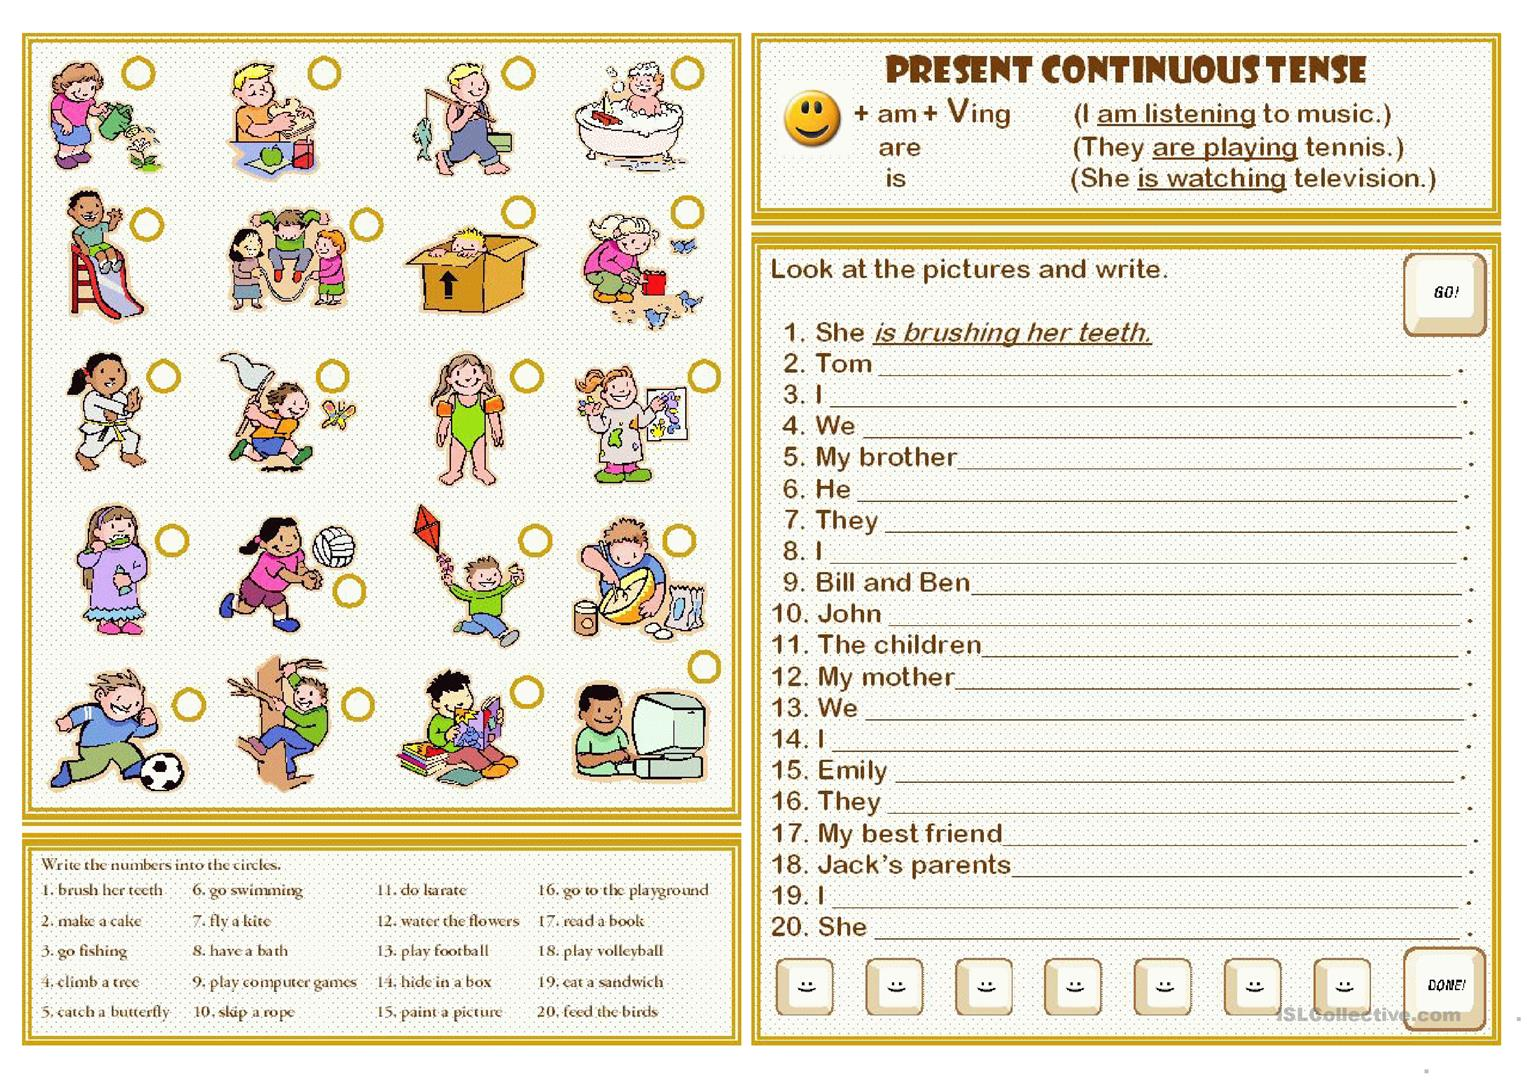 Worksheets Present Continuous Worksheets present continuous tense worksheet free esl printable worksheets full screen